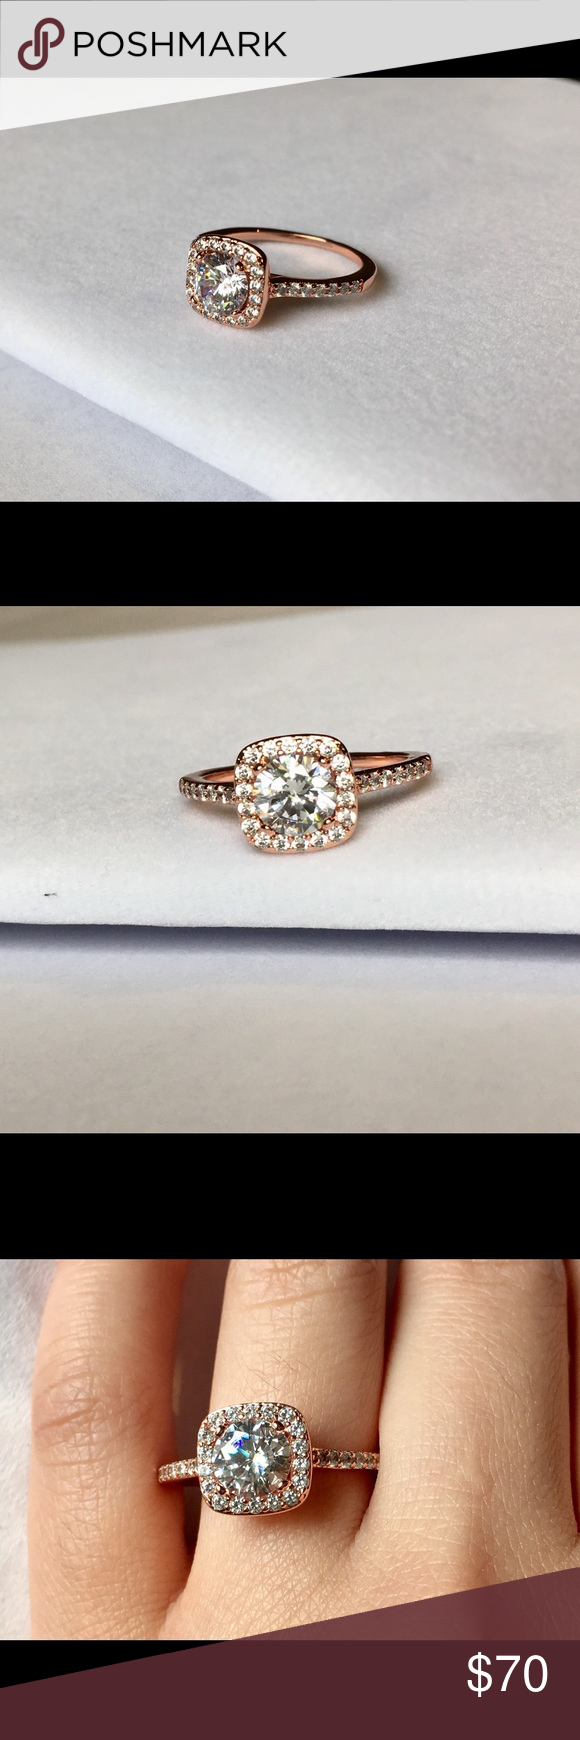 Swarovski 18K Rose Gold-Plate Engagement Ring Condition of this ring is new. Never been worn. Size  is 9.5. Rose gold color. 18k gold plating. Bandwidth 0.5cm. Lead and nickel free. Hypoallergenic. Jewelry Rings